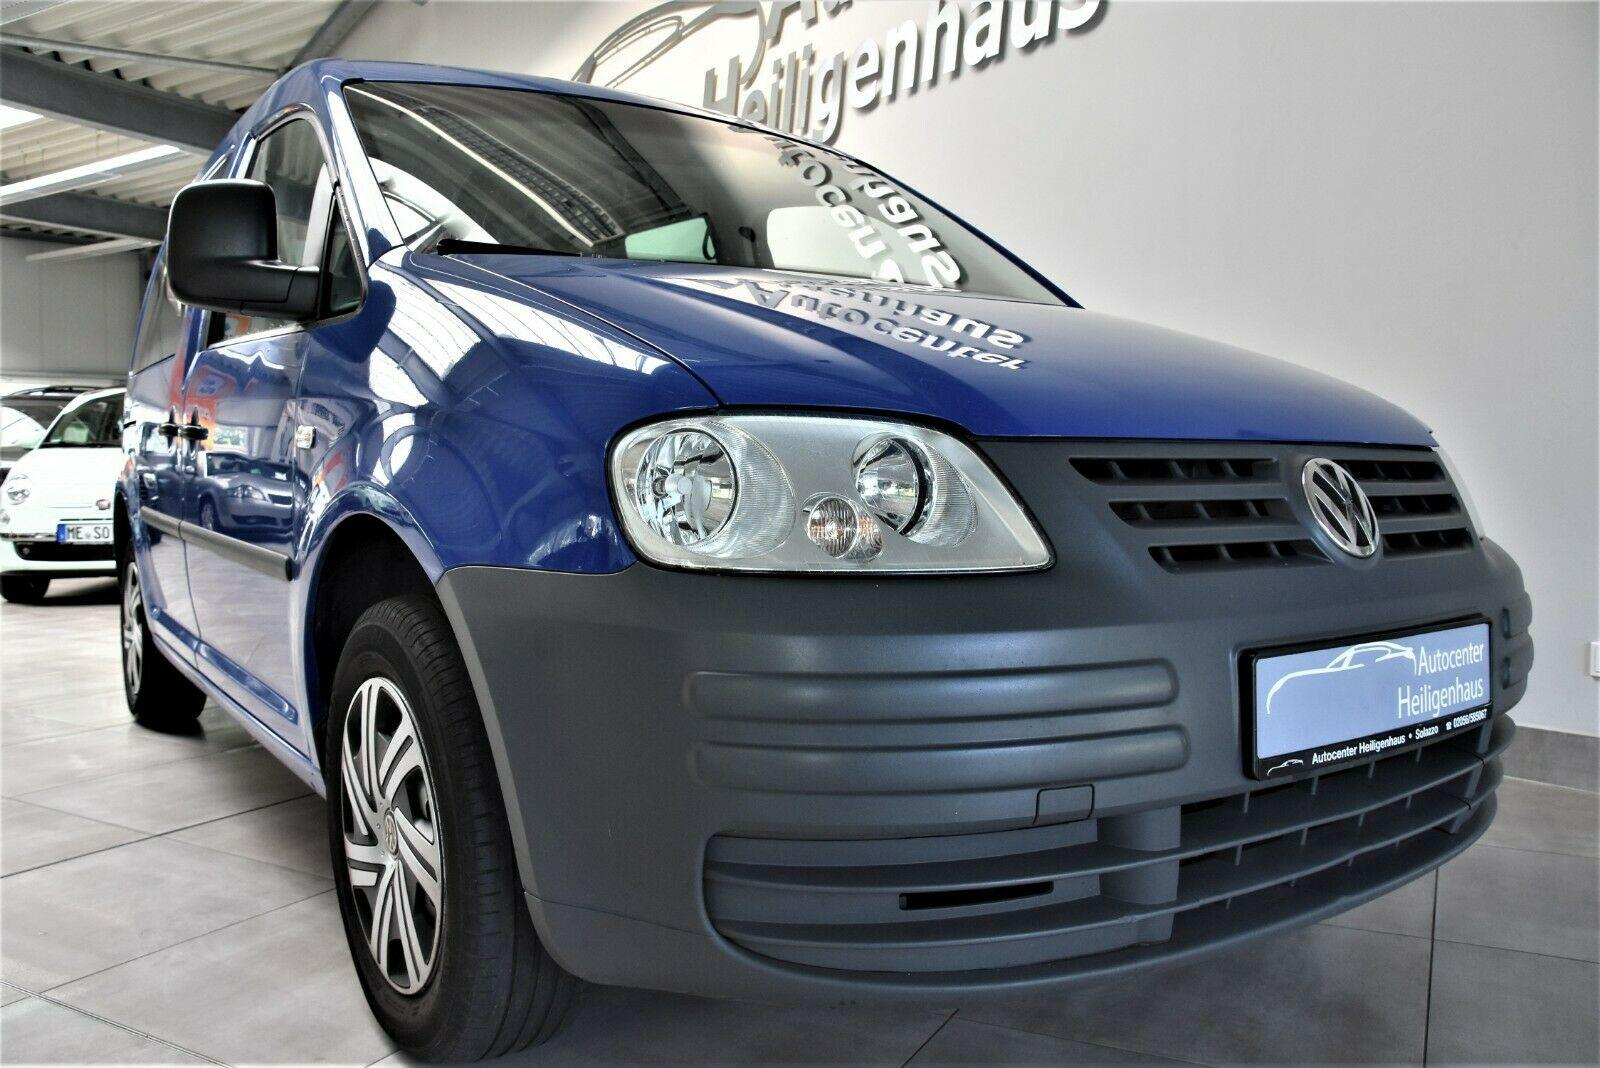 VW Caddy 1.6 Kombi Klima CD Radio Allwetterreifen